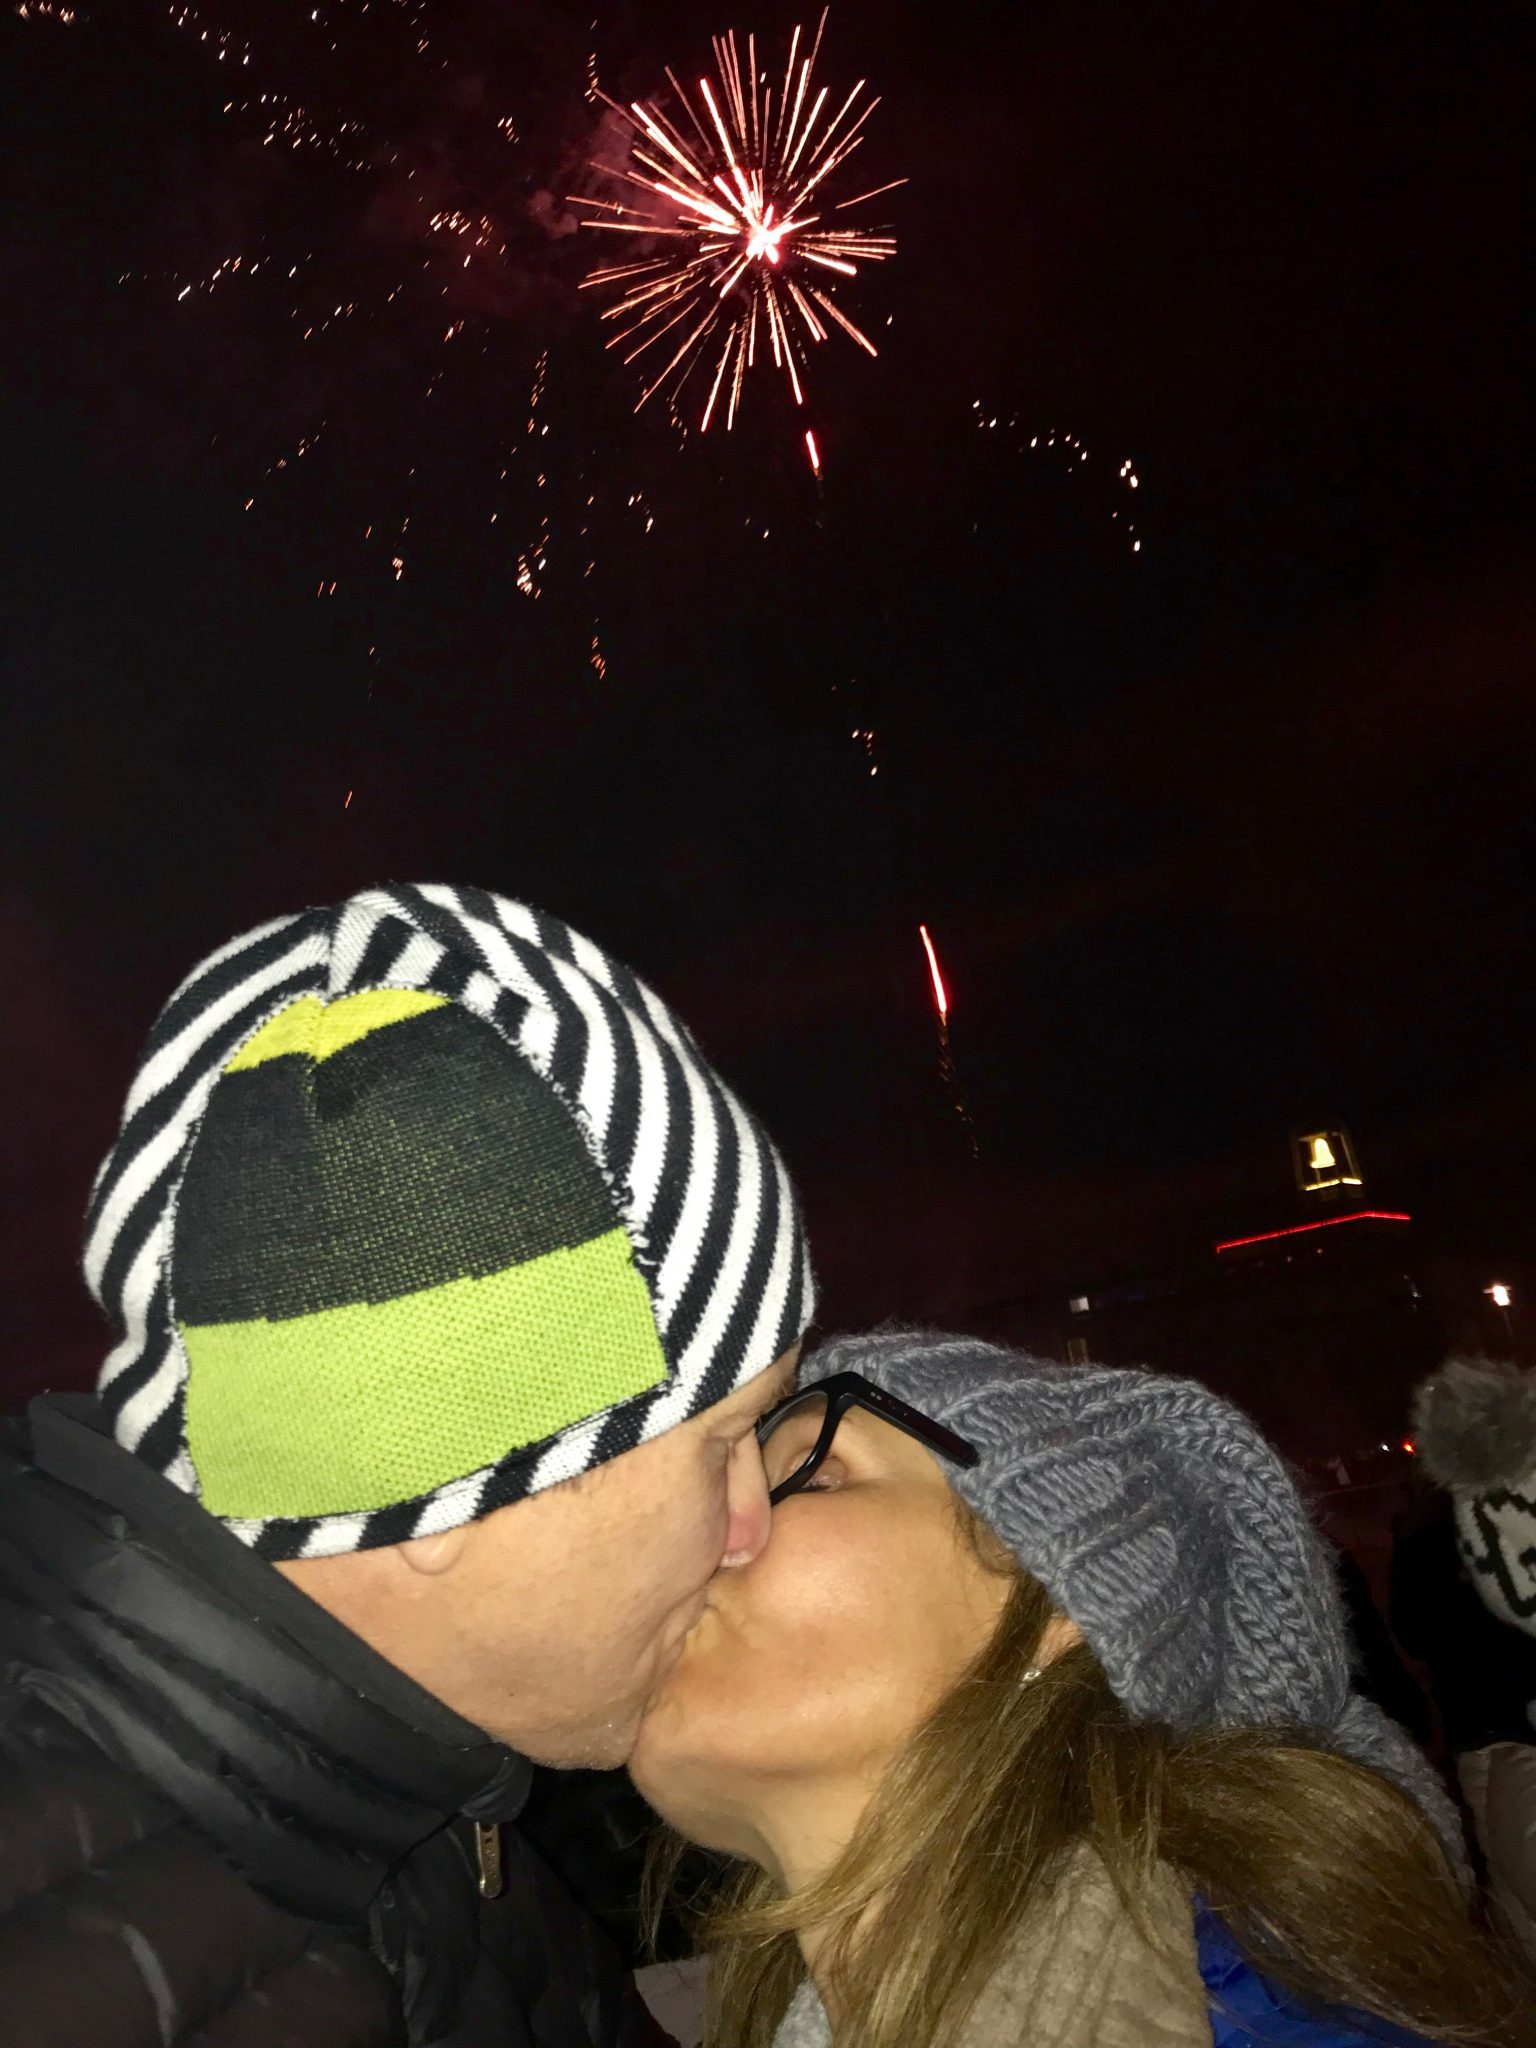 new years eve fireworks in reykjavik new years eve kiss